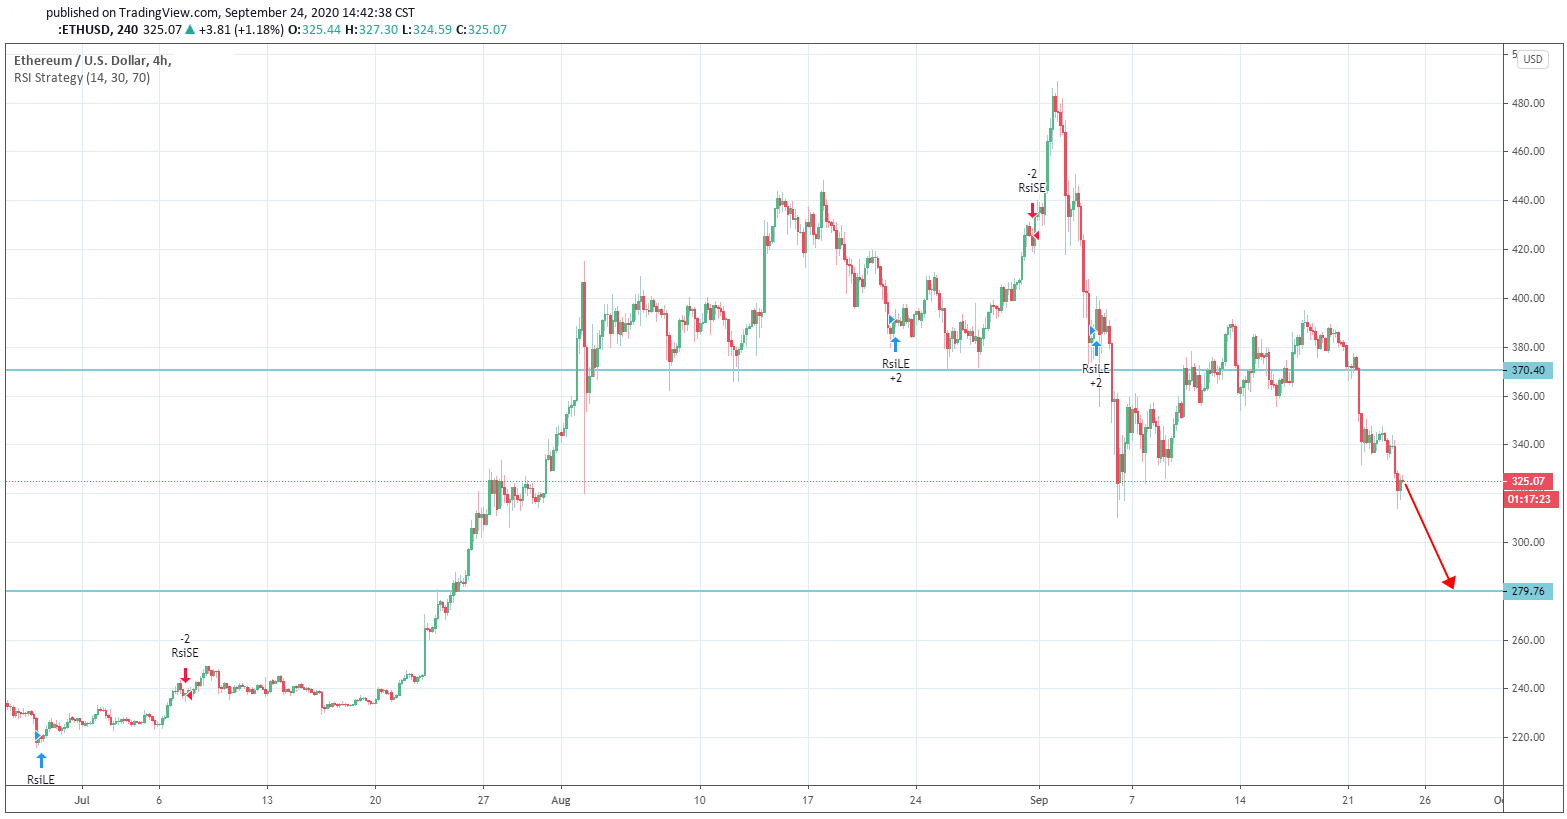 Ether Dip Drastic in Price as the Investors Flee Out of the Markets